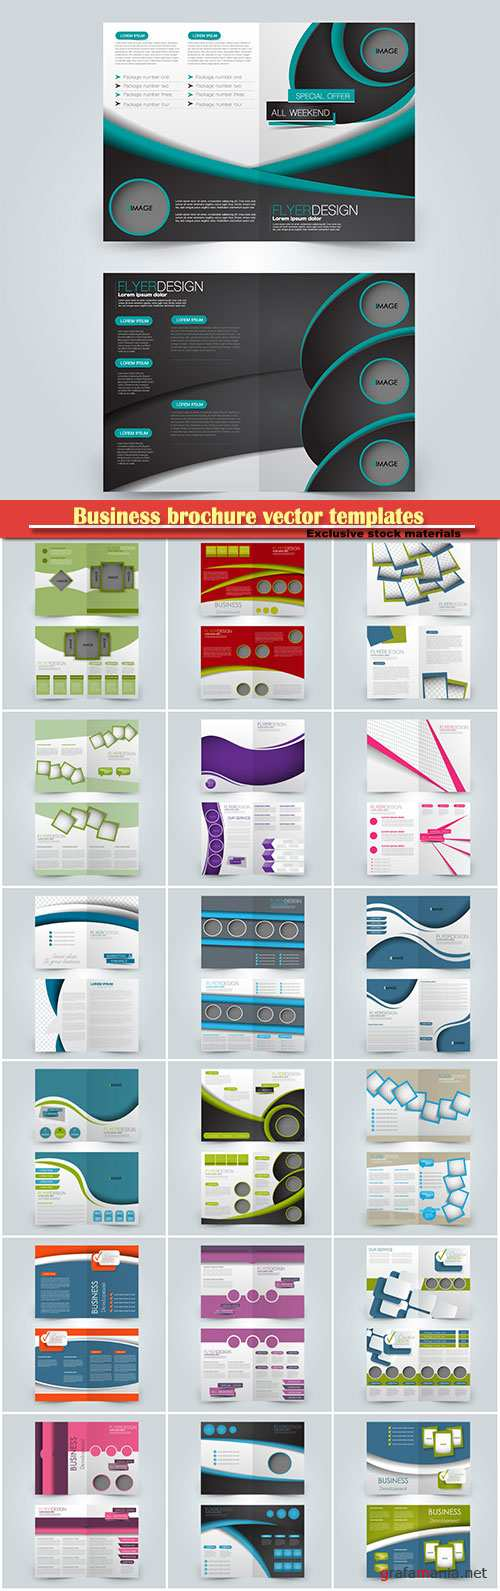 Business brochure vector templates, magazine cover, business mockup, education, presentation, report # 53